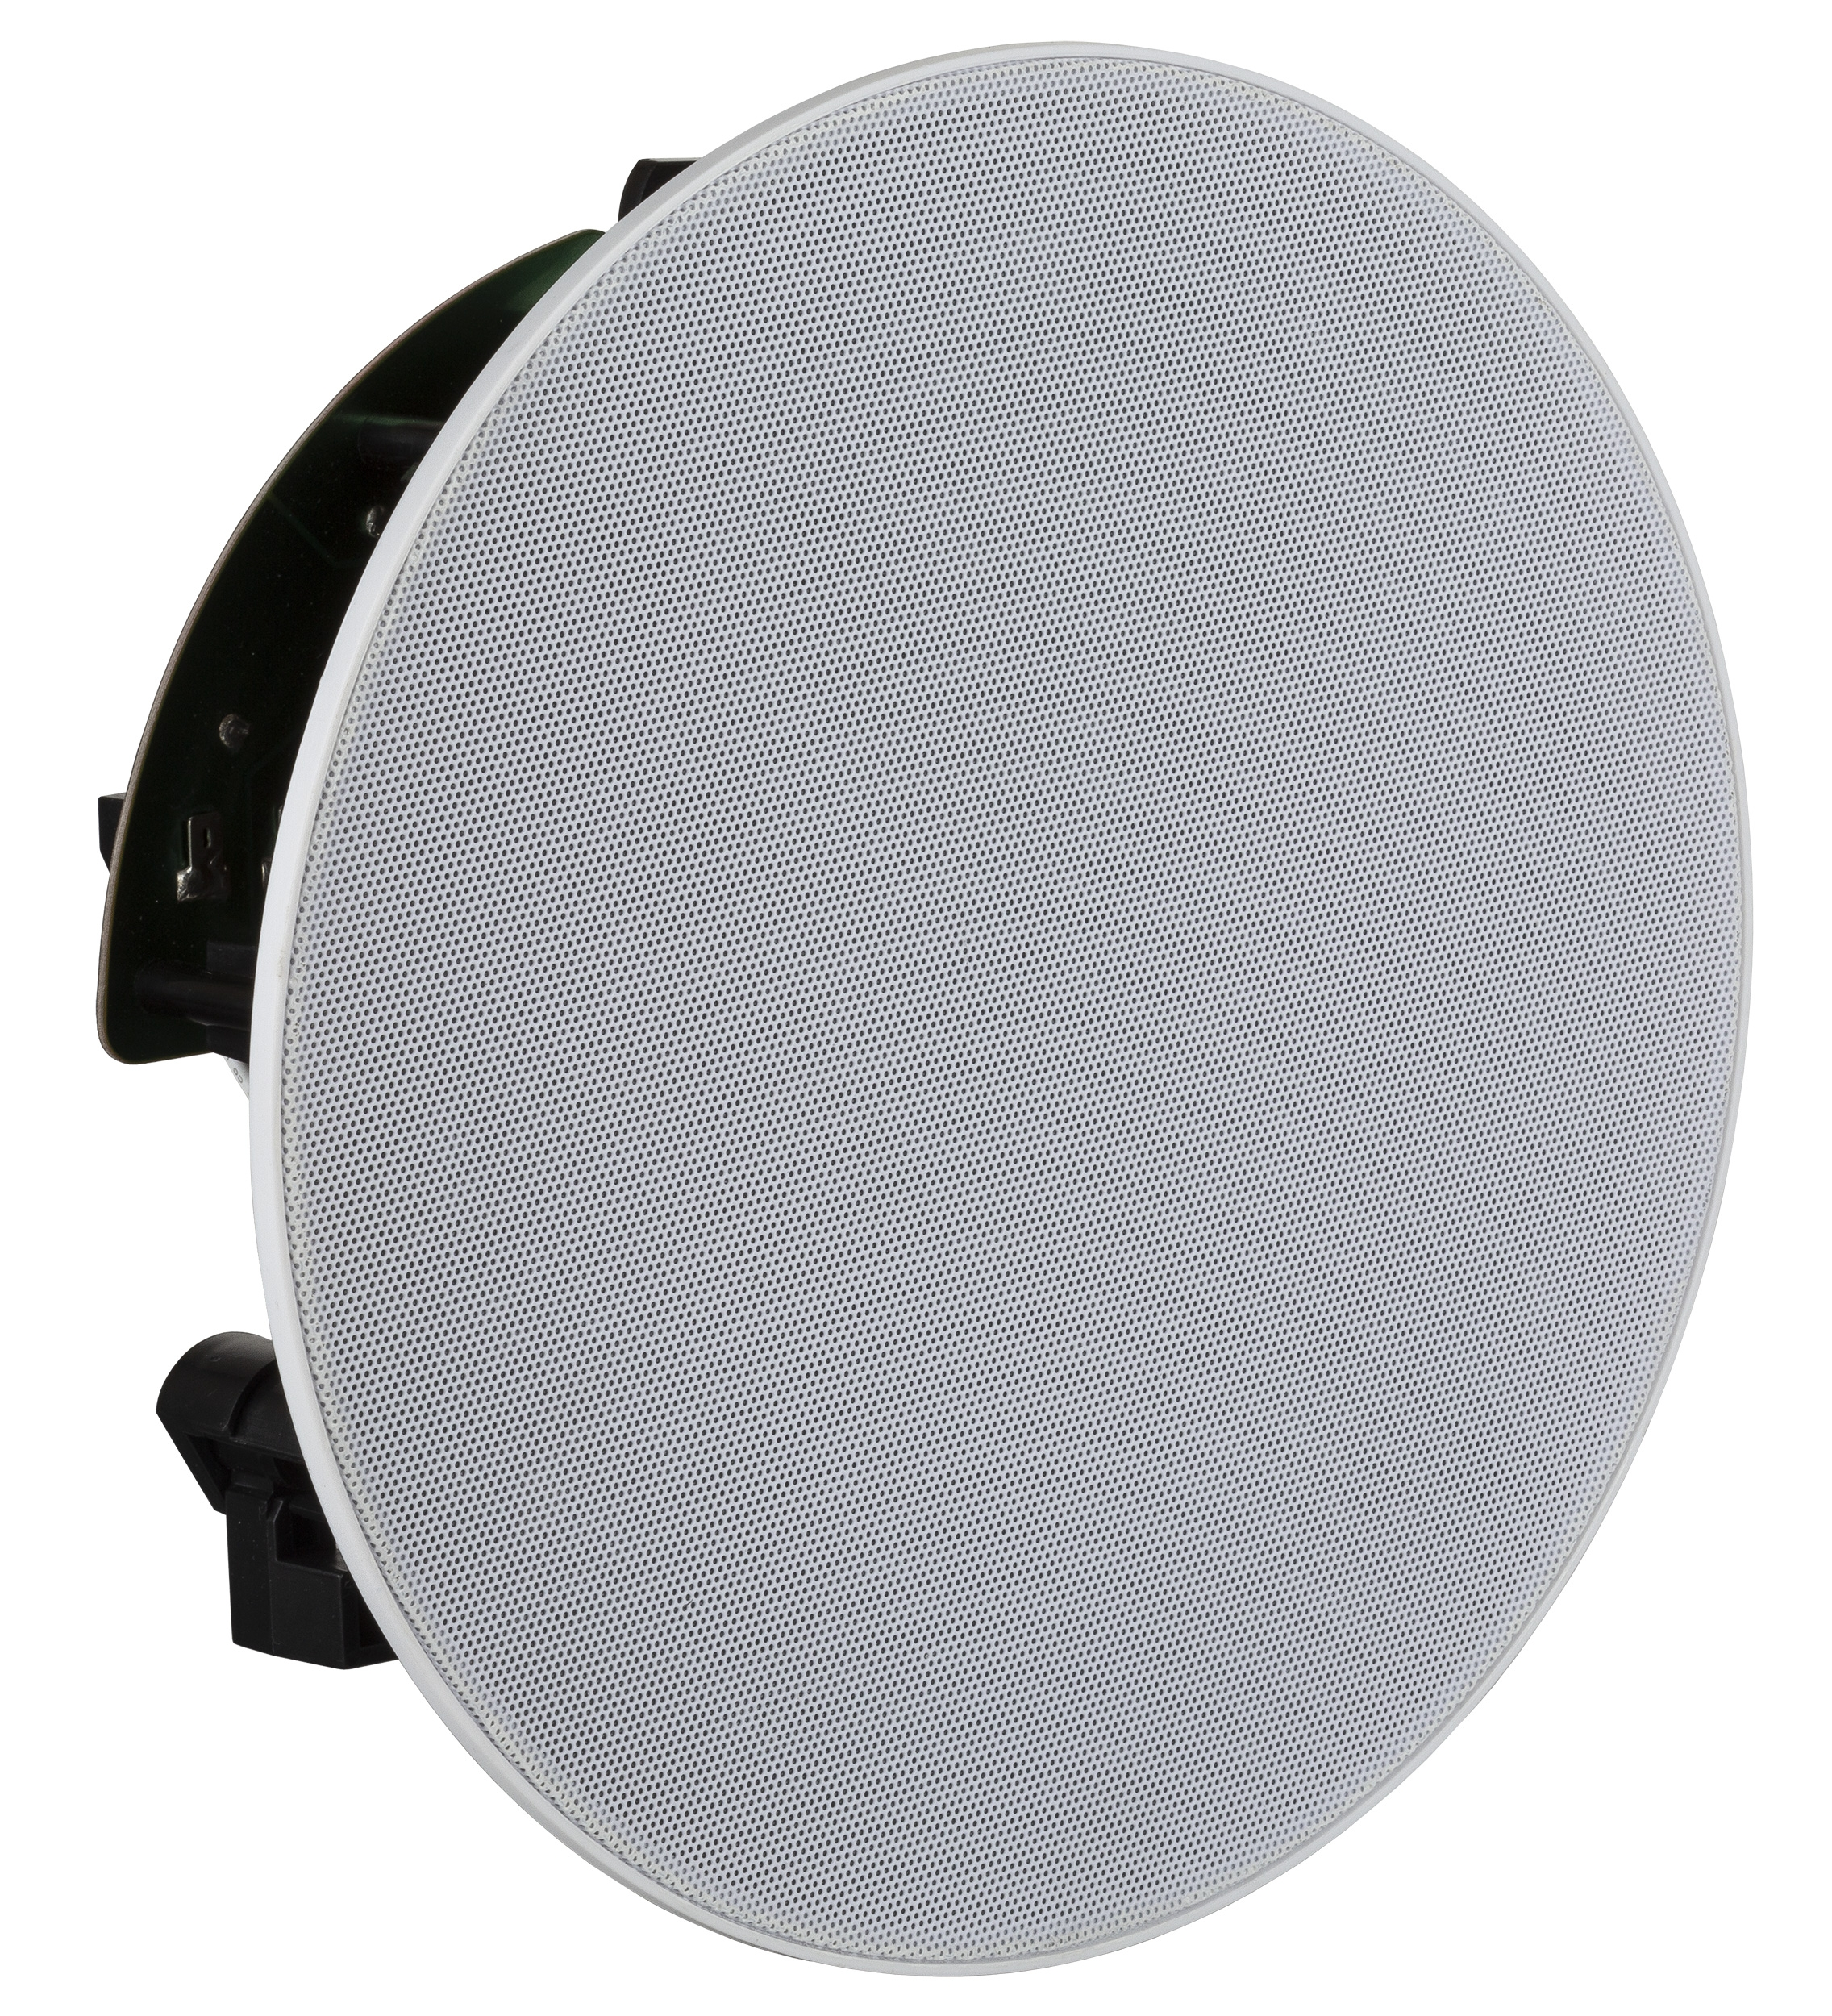 Recessed ceiling speaker 30W RMS at 8 Ohms and 100V